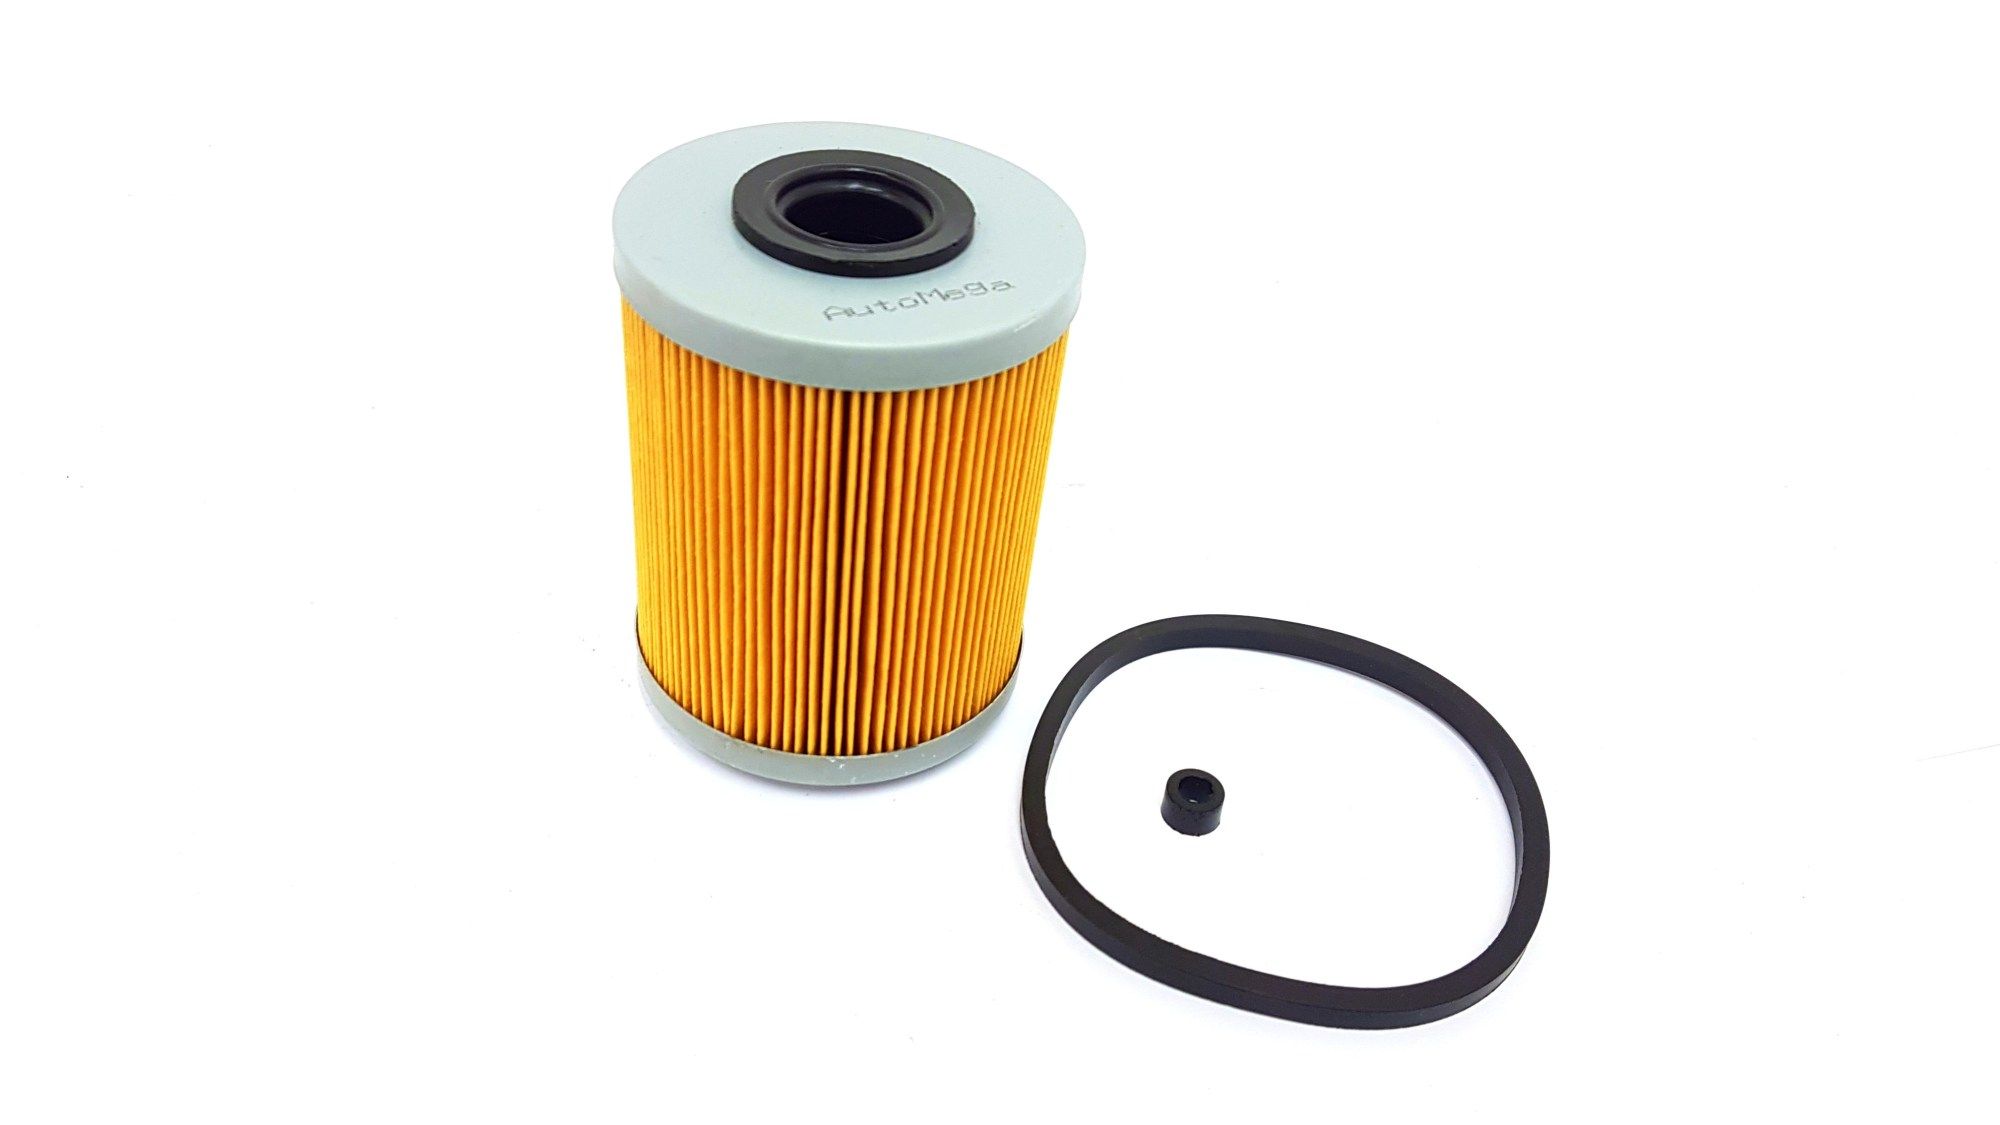 hight resolution of vauxhall diesel fuel filter automega 180008810 tap to expand